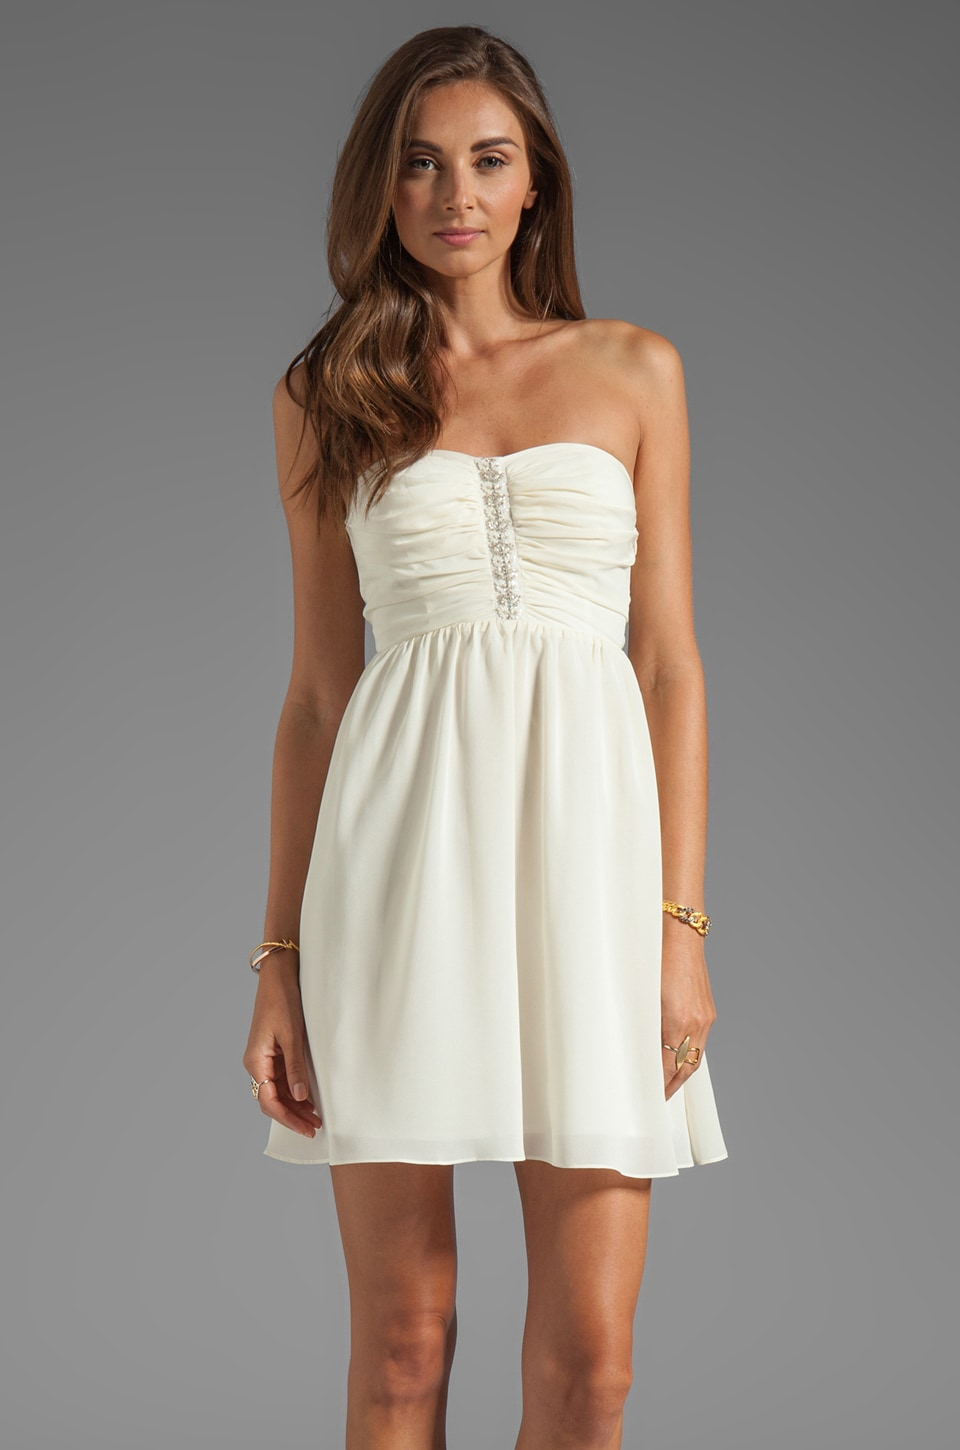 MM Couture by Miss Me Strapless Dress in Ivory